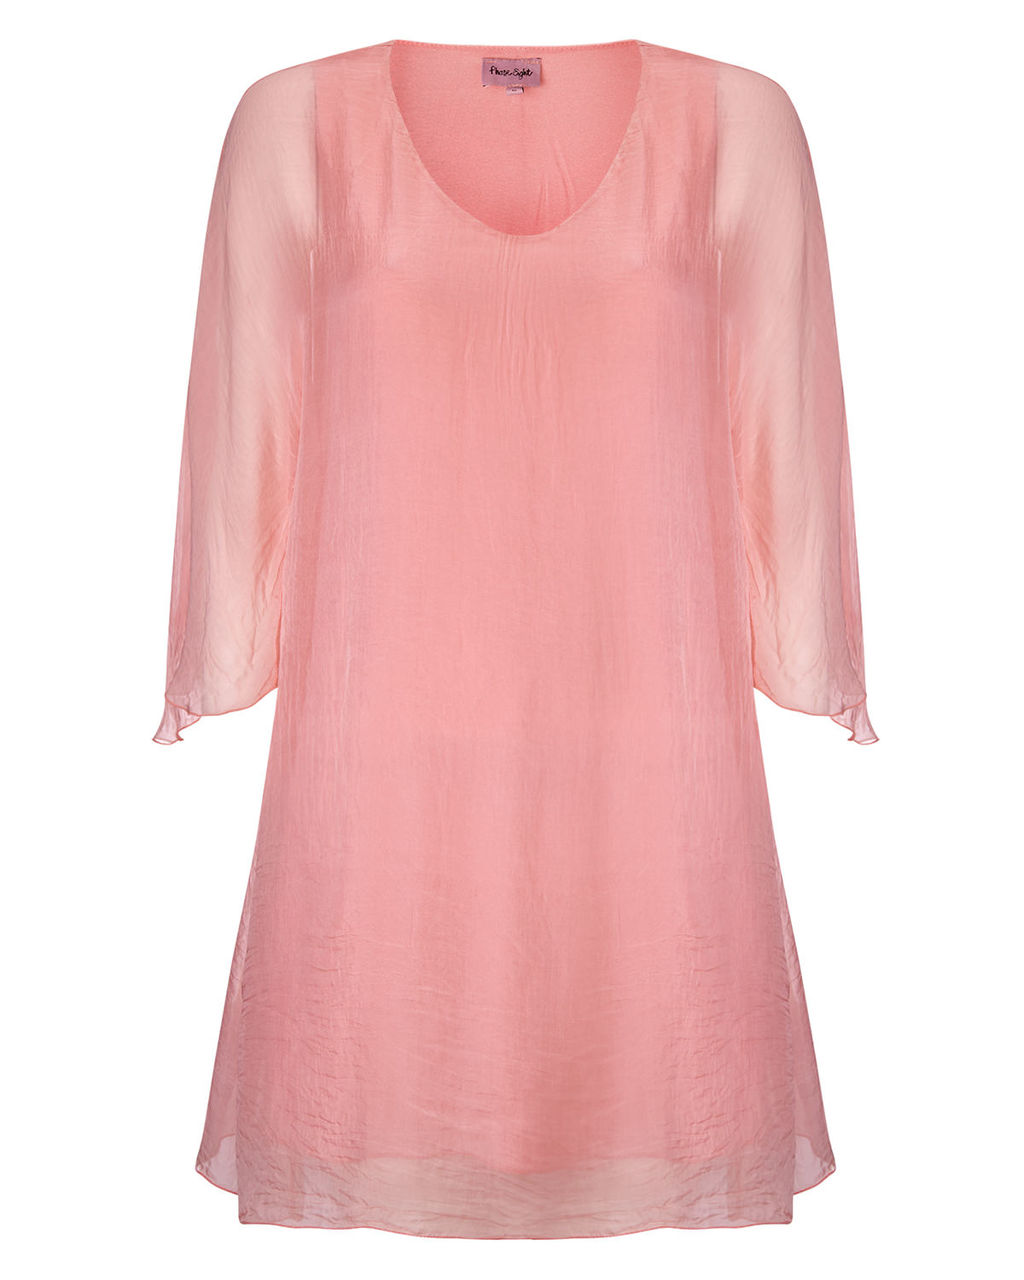 Rabia Silk Tunic - neckline: v-neck; pattern: plain; style: tunic; predominant colour: blush; occasions: casual, evening; fibres: silk - 100%; fit: loose; length: mid thigh; sleeve length: 3/4 length; sleeve style: standard; texture group: silky - light; pattern type: fabric; season: s/s 2015; wardrobe: basic